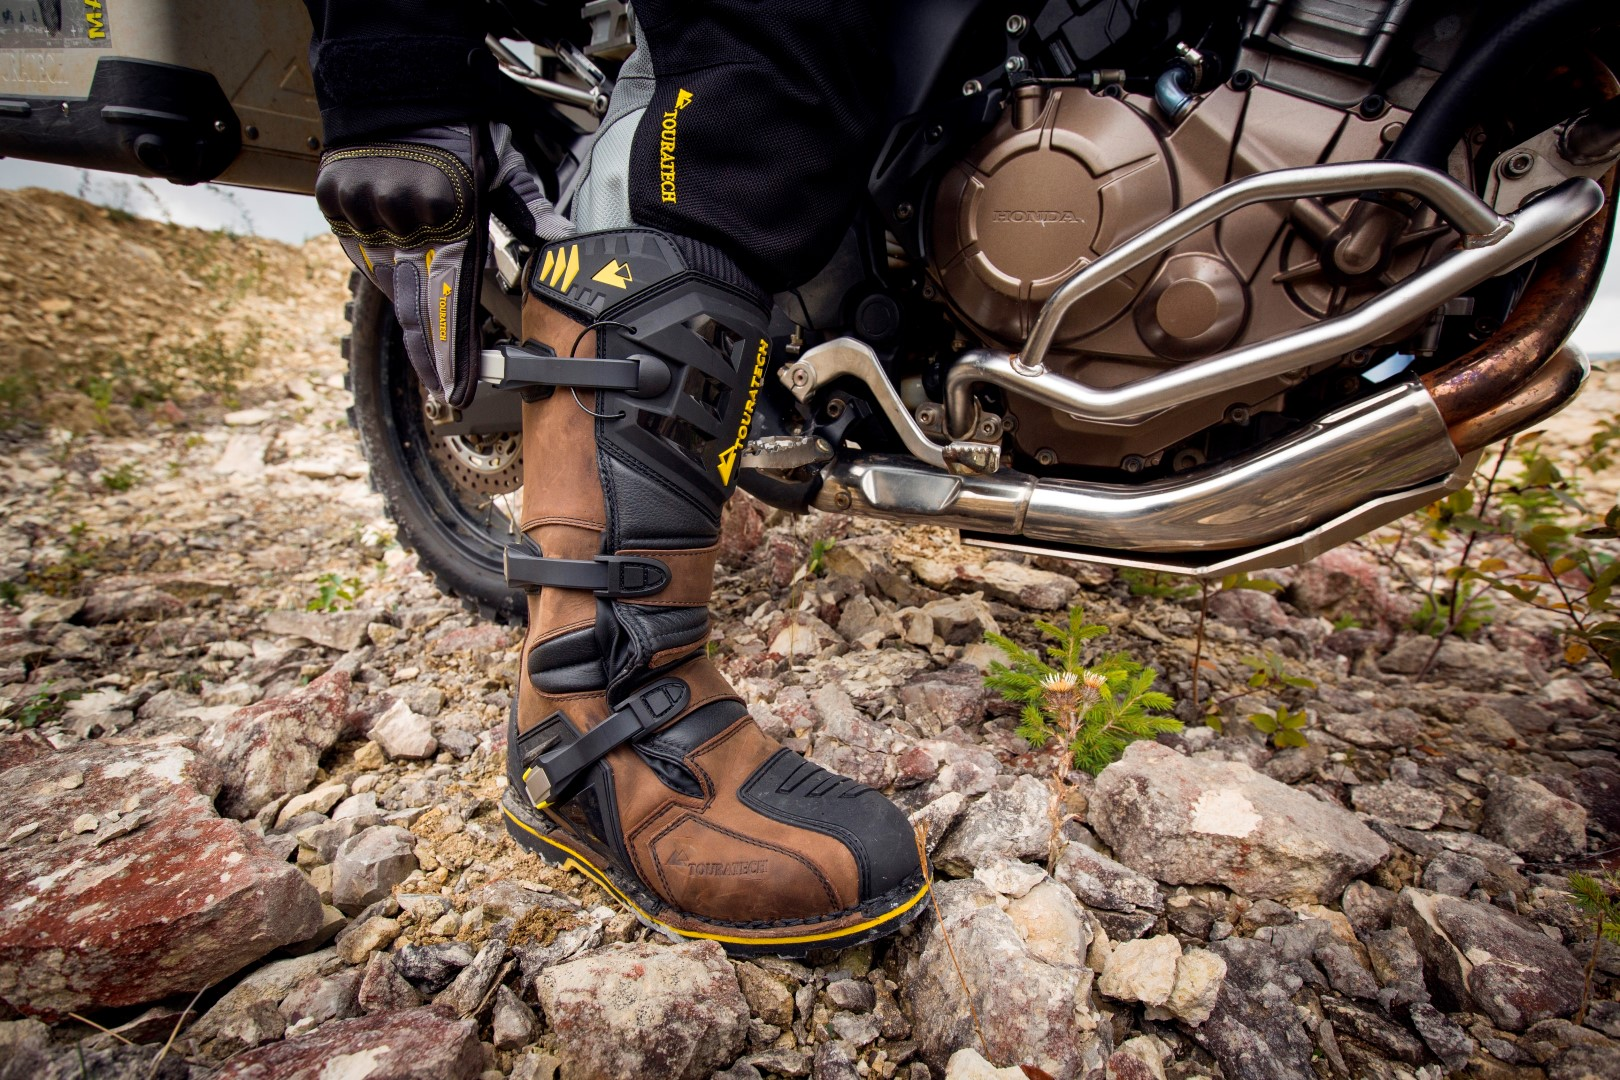 Botas Touratech Destino Adventure, tres en una